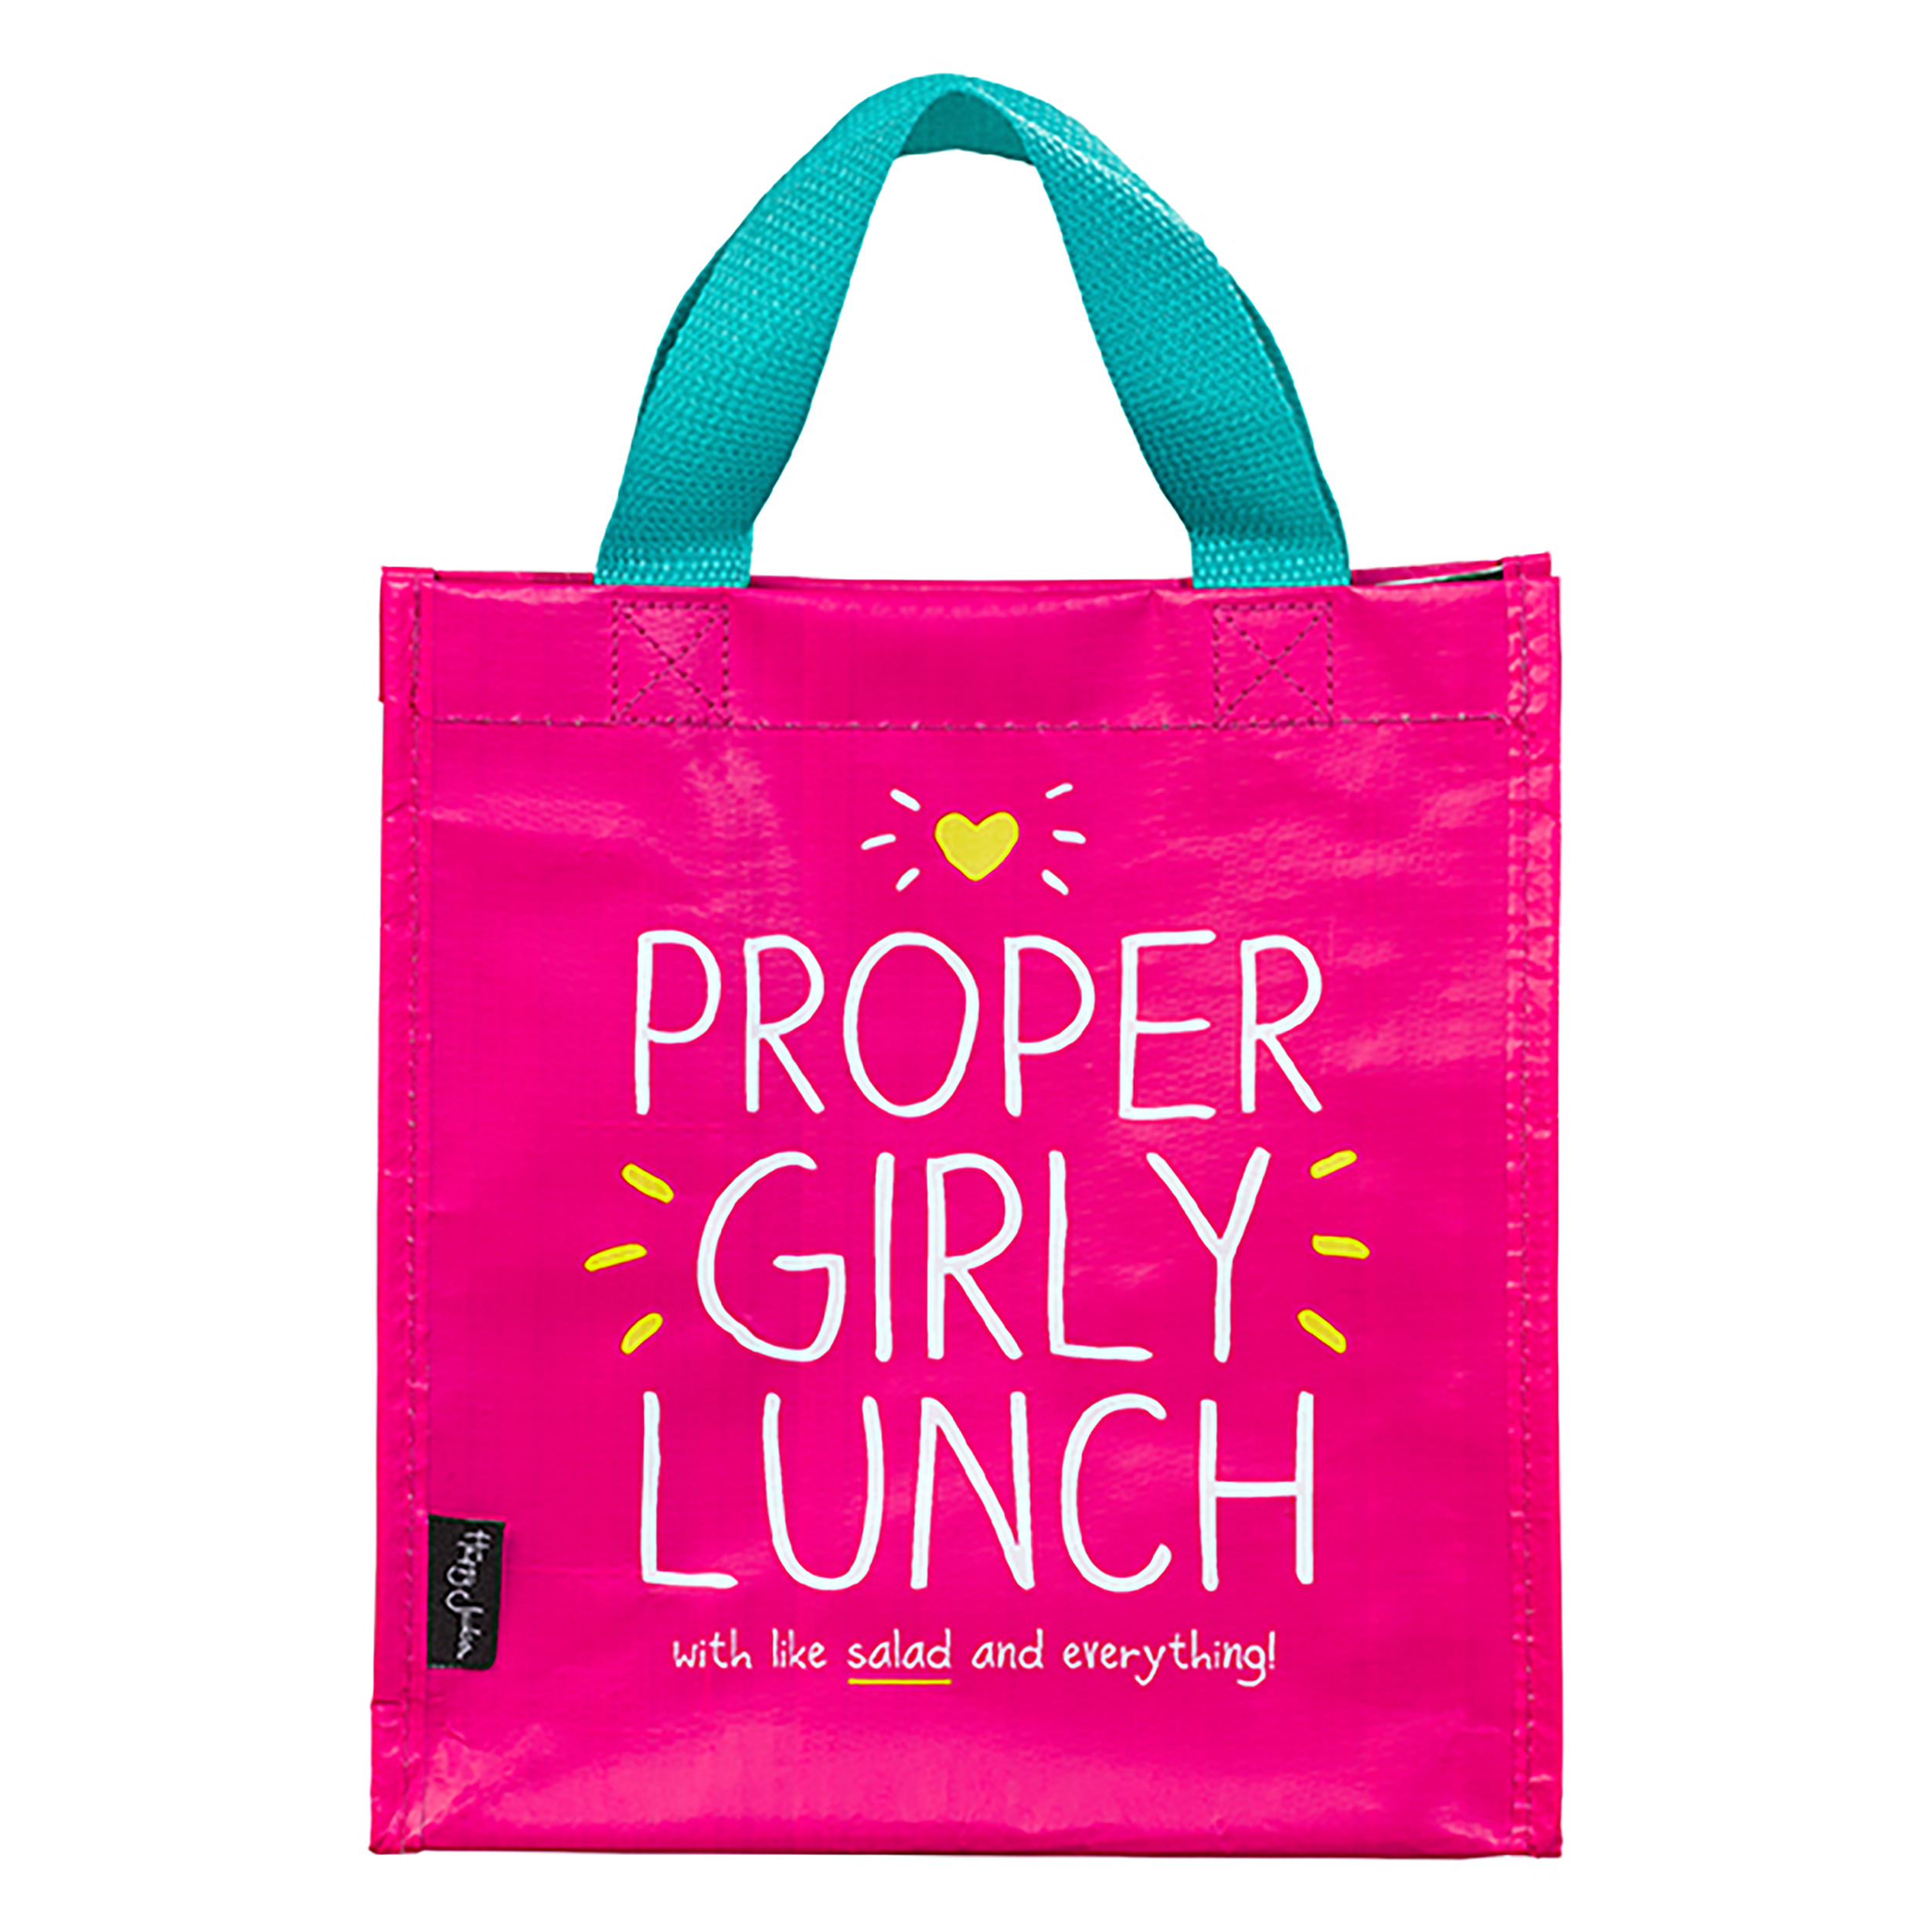 Proper Girly Lunch' Tote Bag